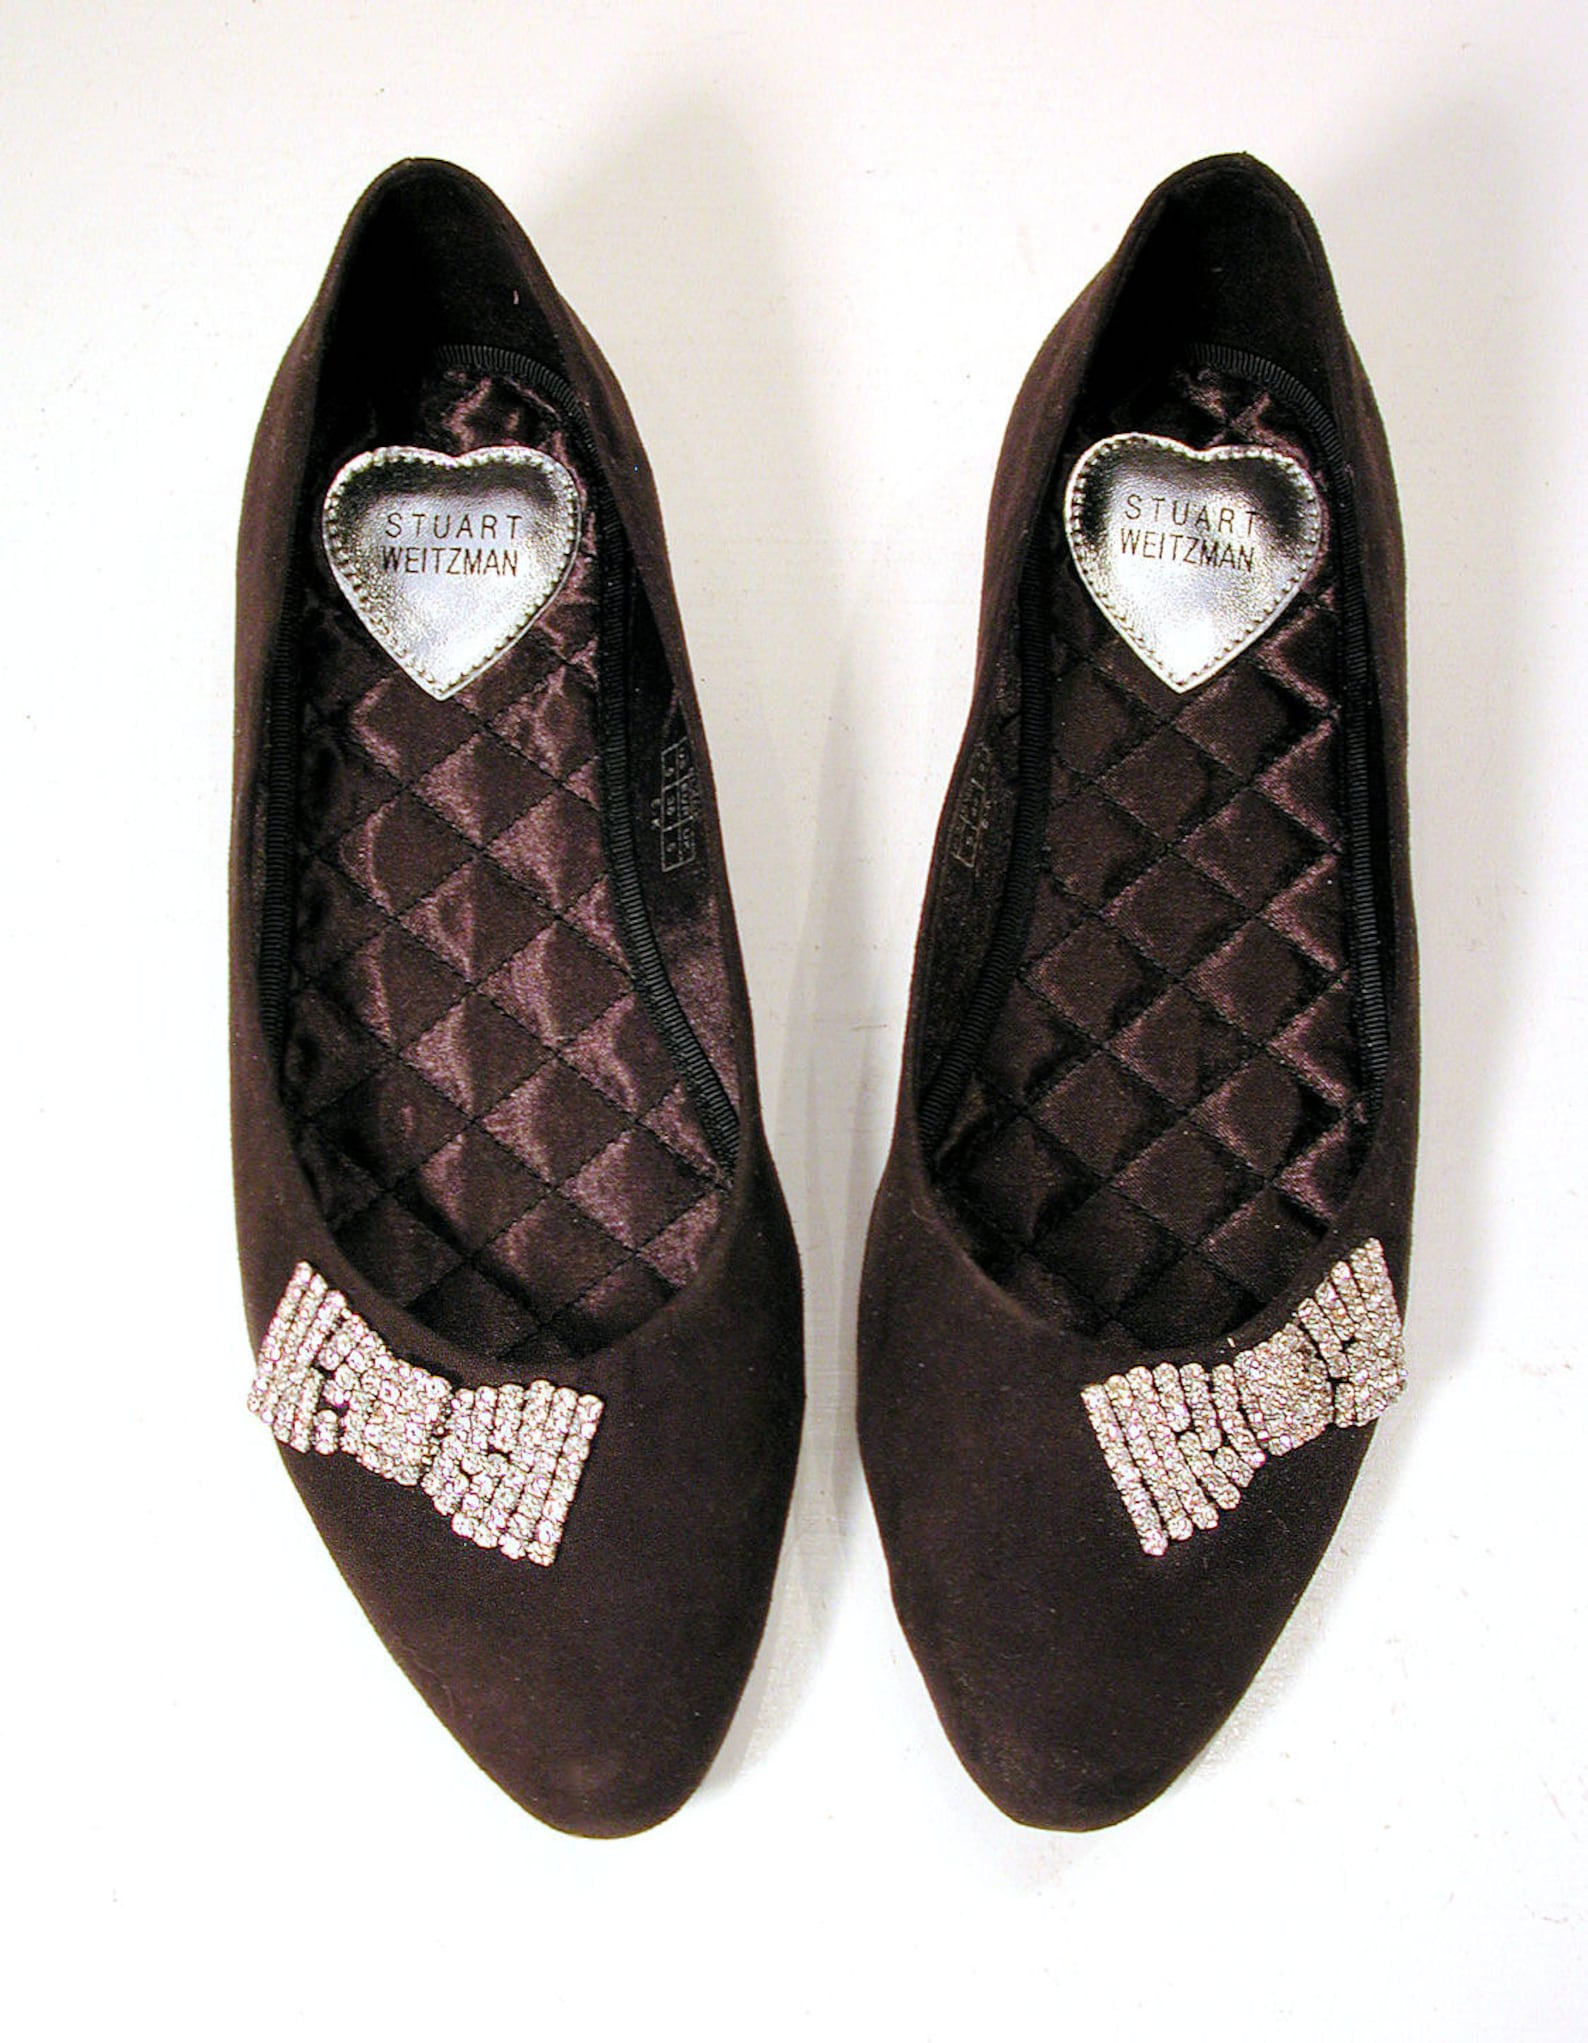 90s stuart weitzman flats size 5, black rhinestone bows designer ballet shoes microsuede metallic silver nos new old stock unwor